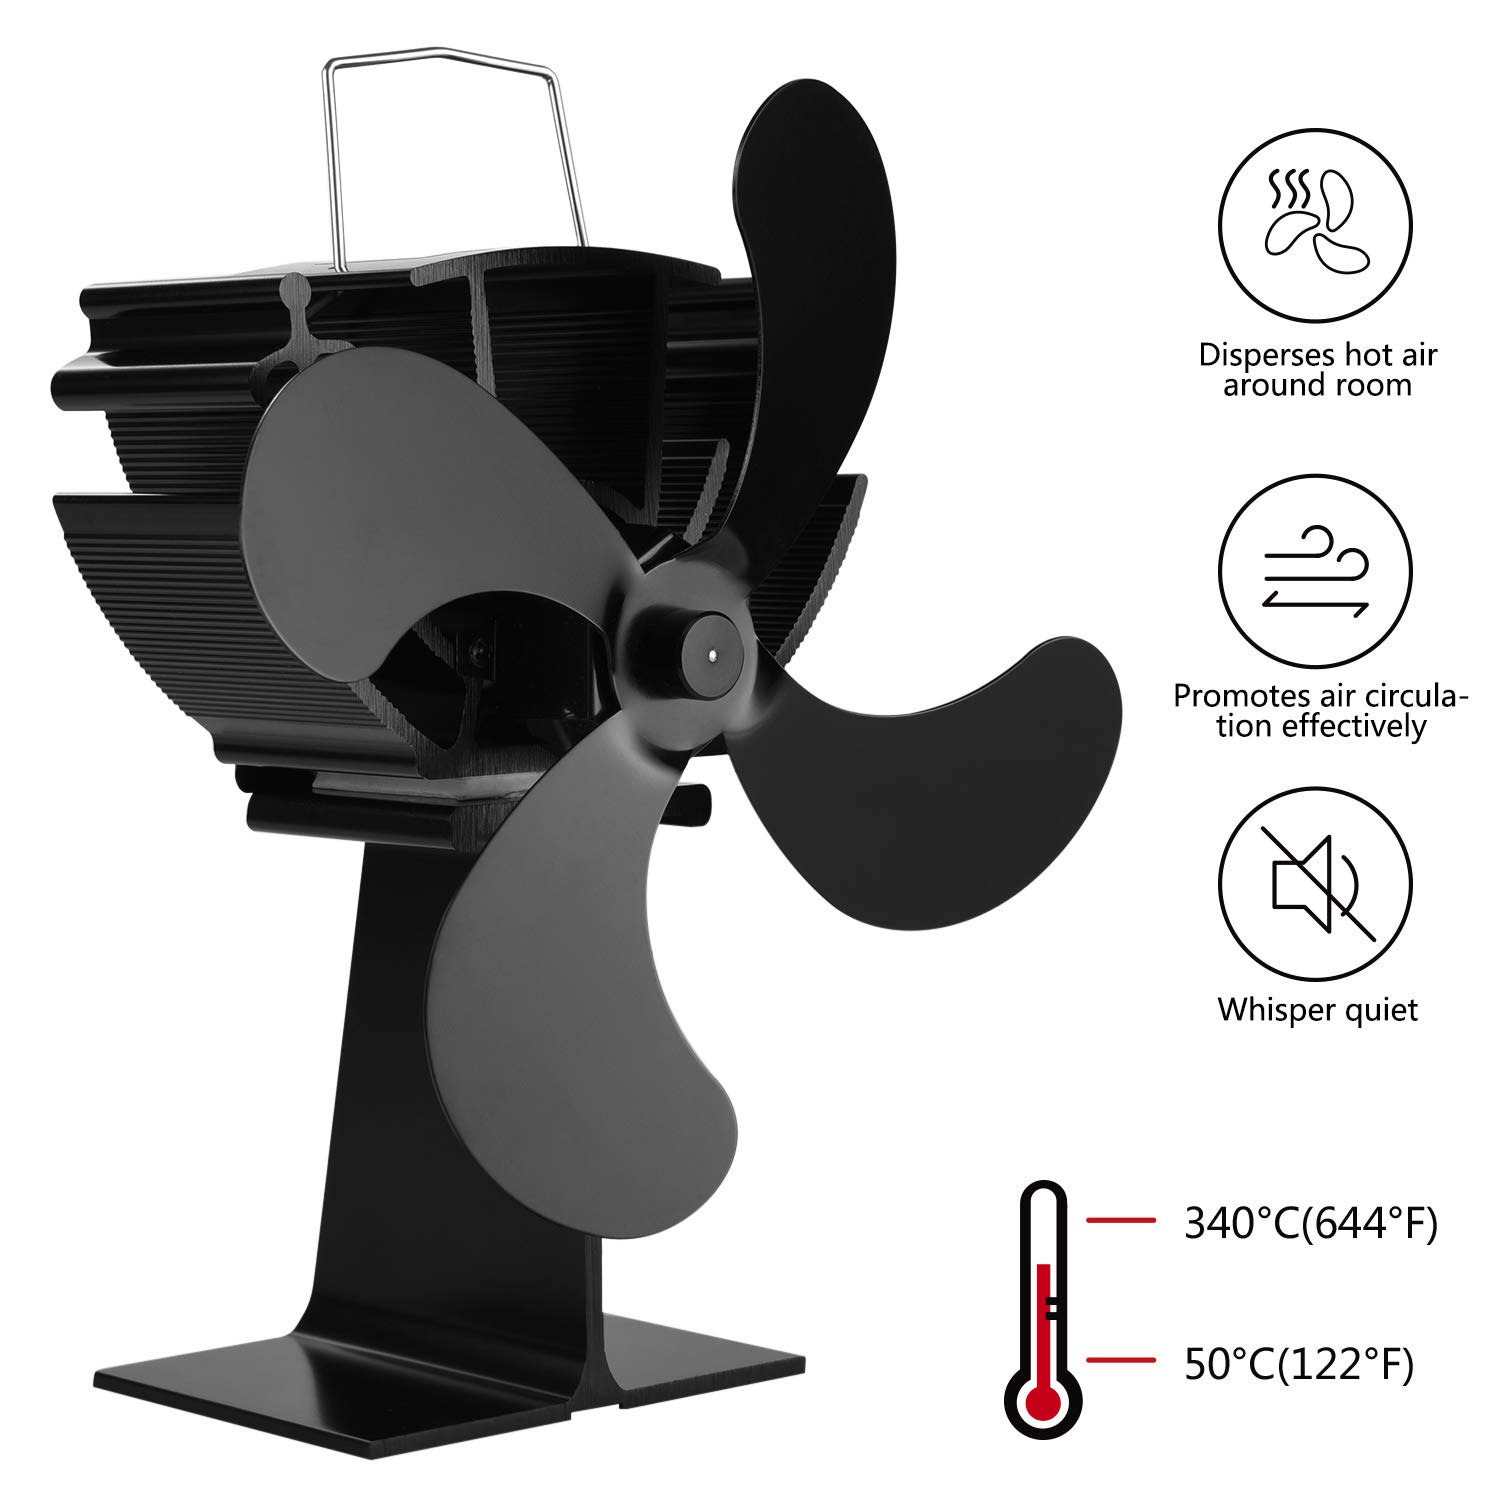 AlfaView Stove Fan 4 Blade Heat Powered Whisper Quiet Eco-Friendly Stove Fan